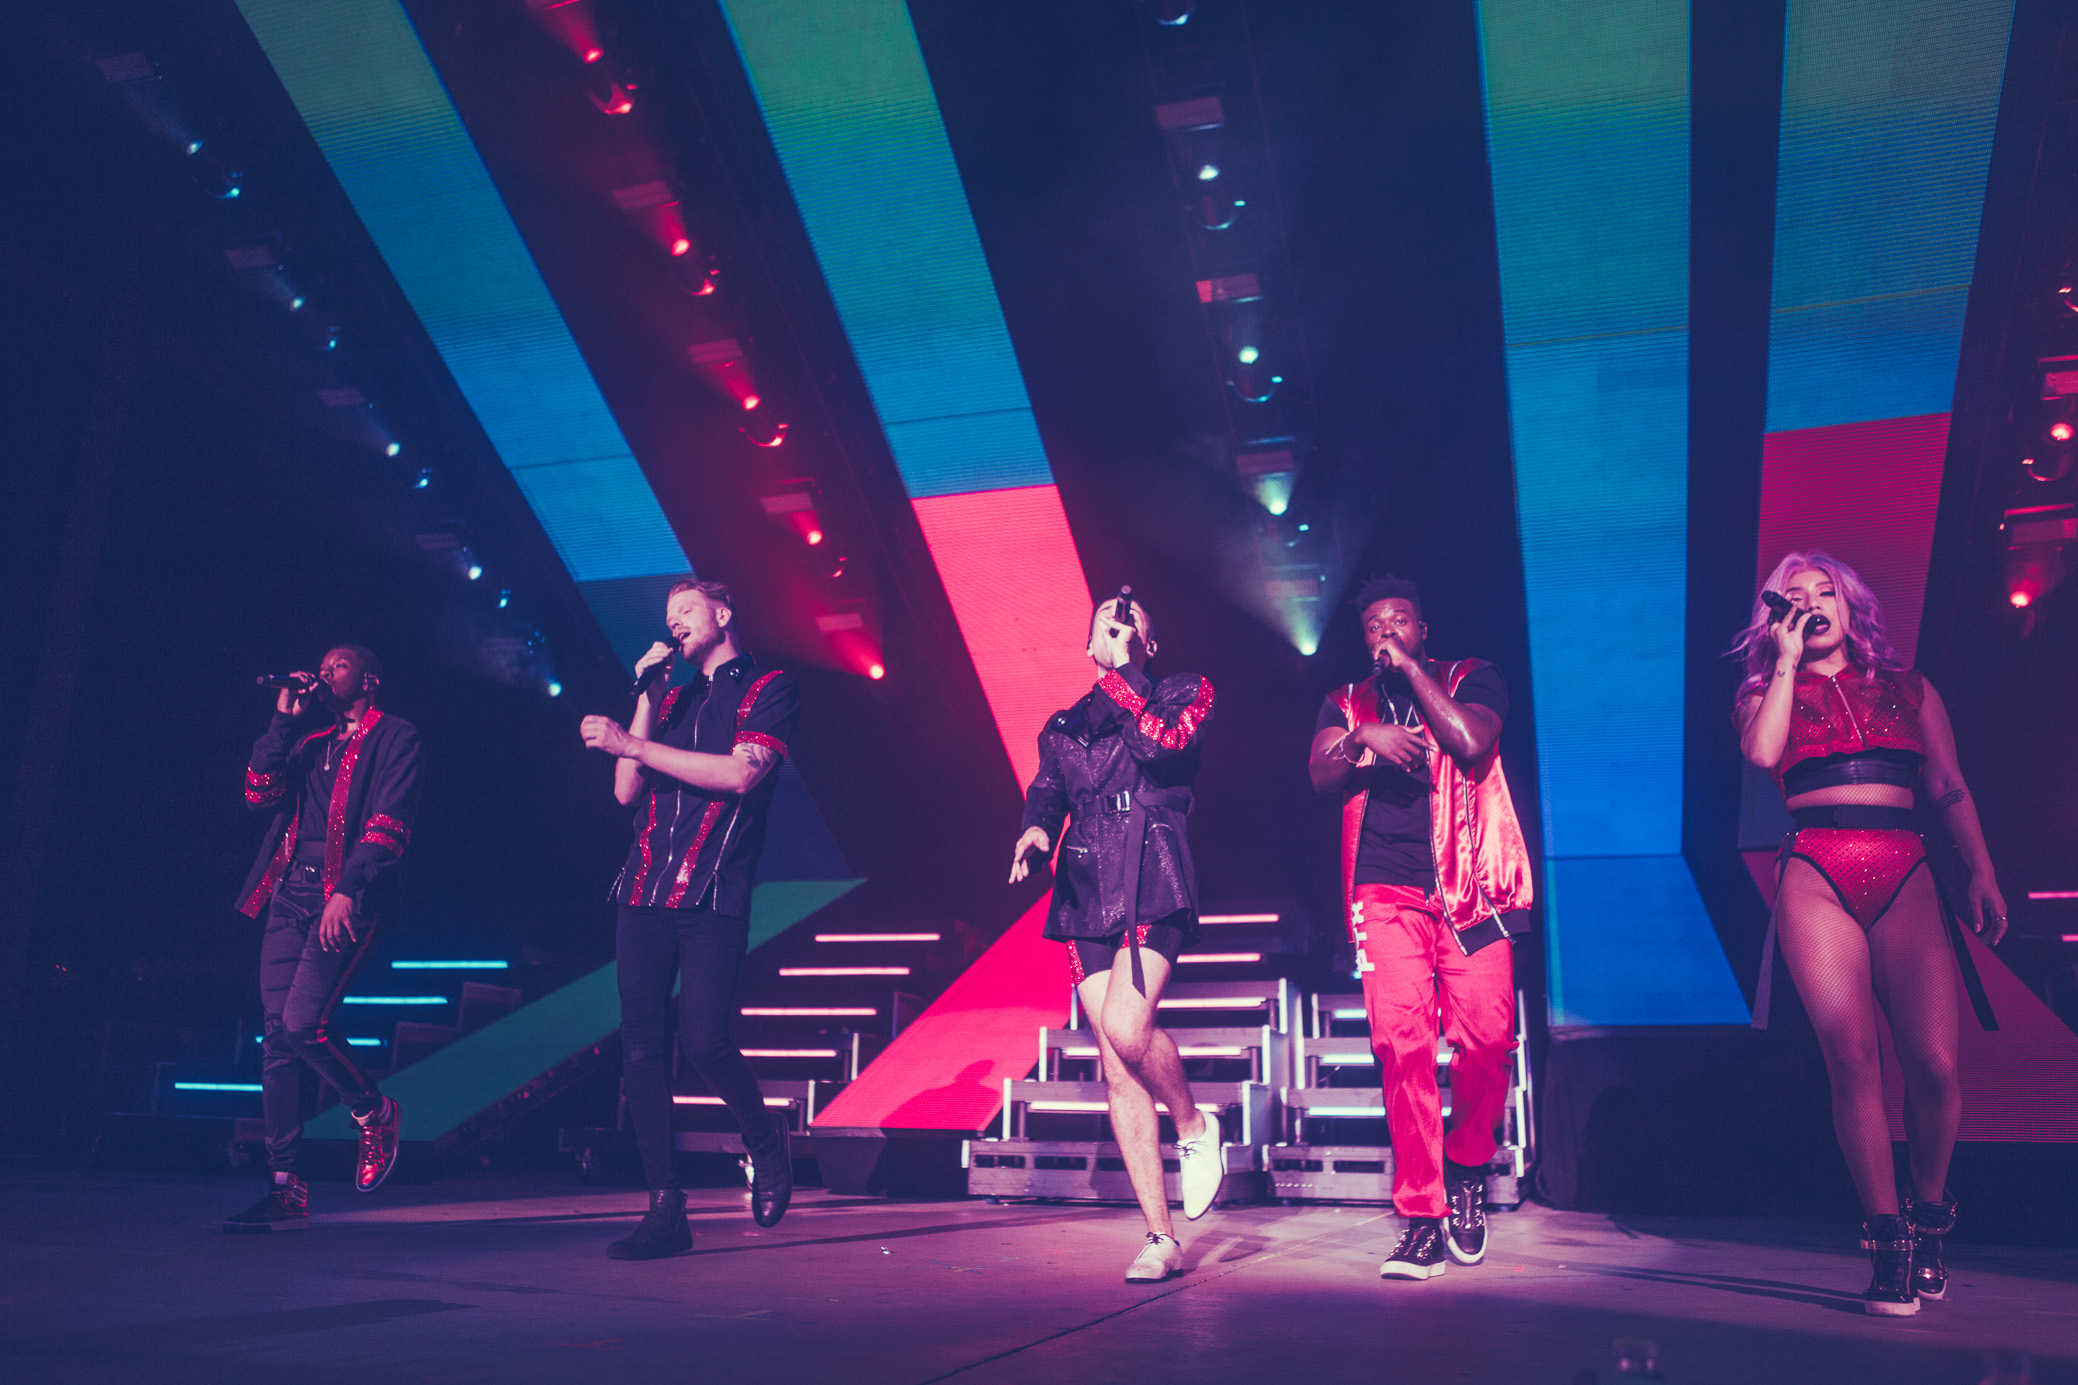 Pentatonix performs in concer at the Oak Mountain Amphitheatre in Pelham, Alabama on August 2nd, 2018. (Photo by David A. Smith/DSmithScenes)